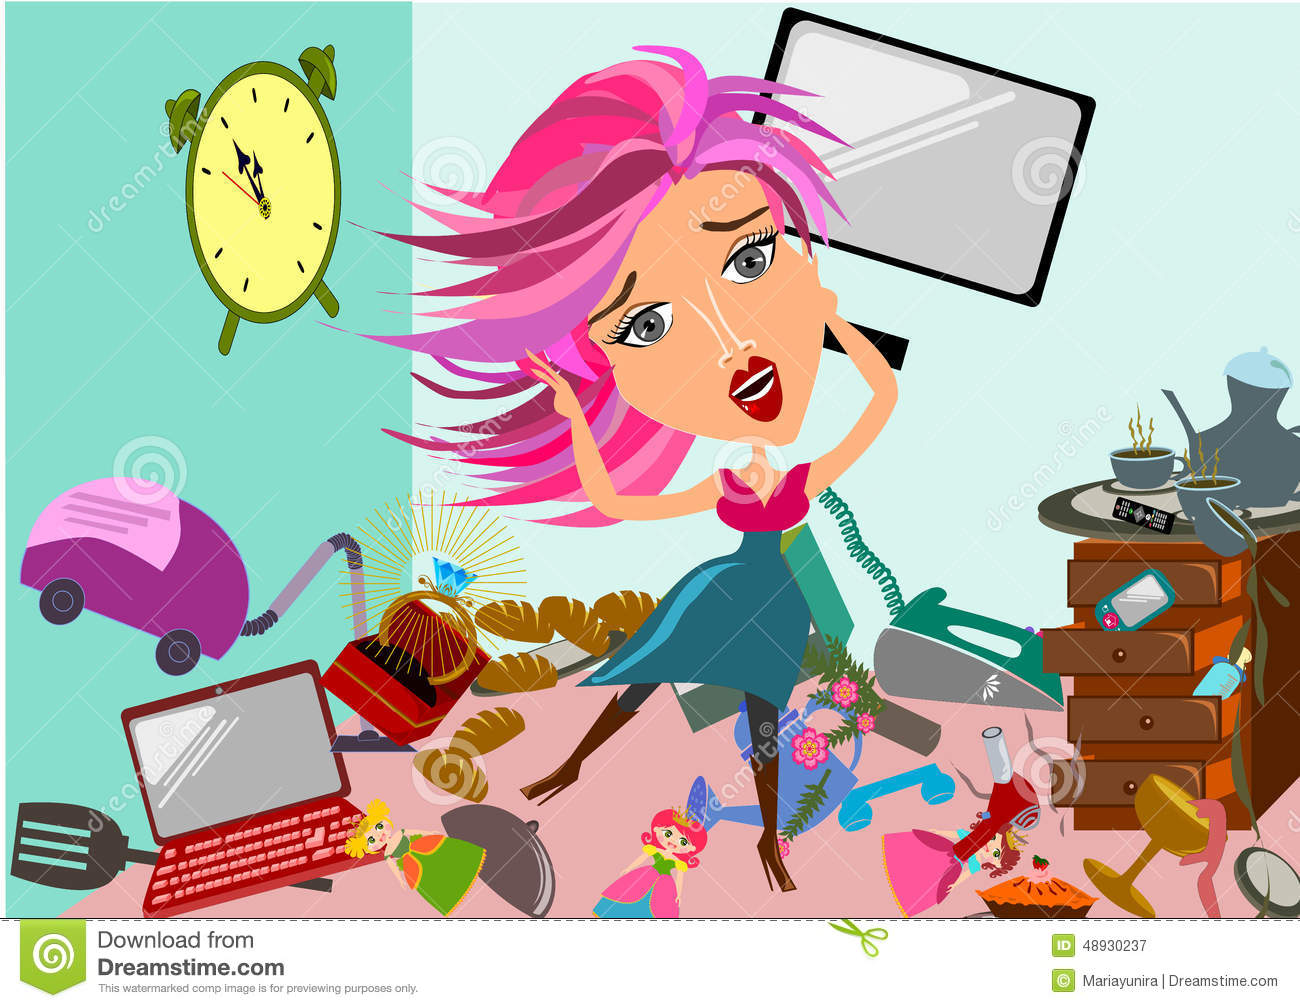 messy house clipart - photo #26